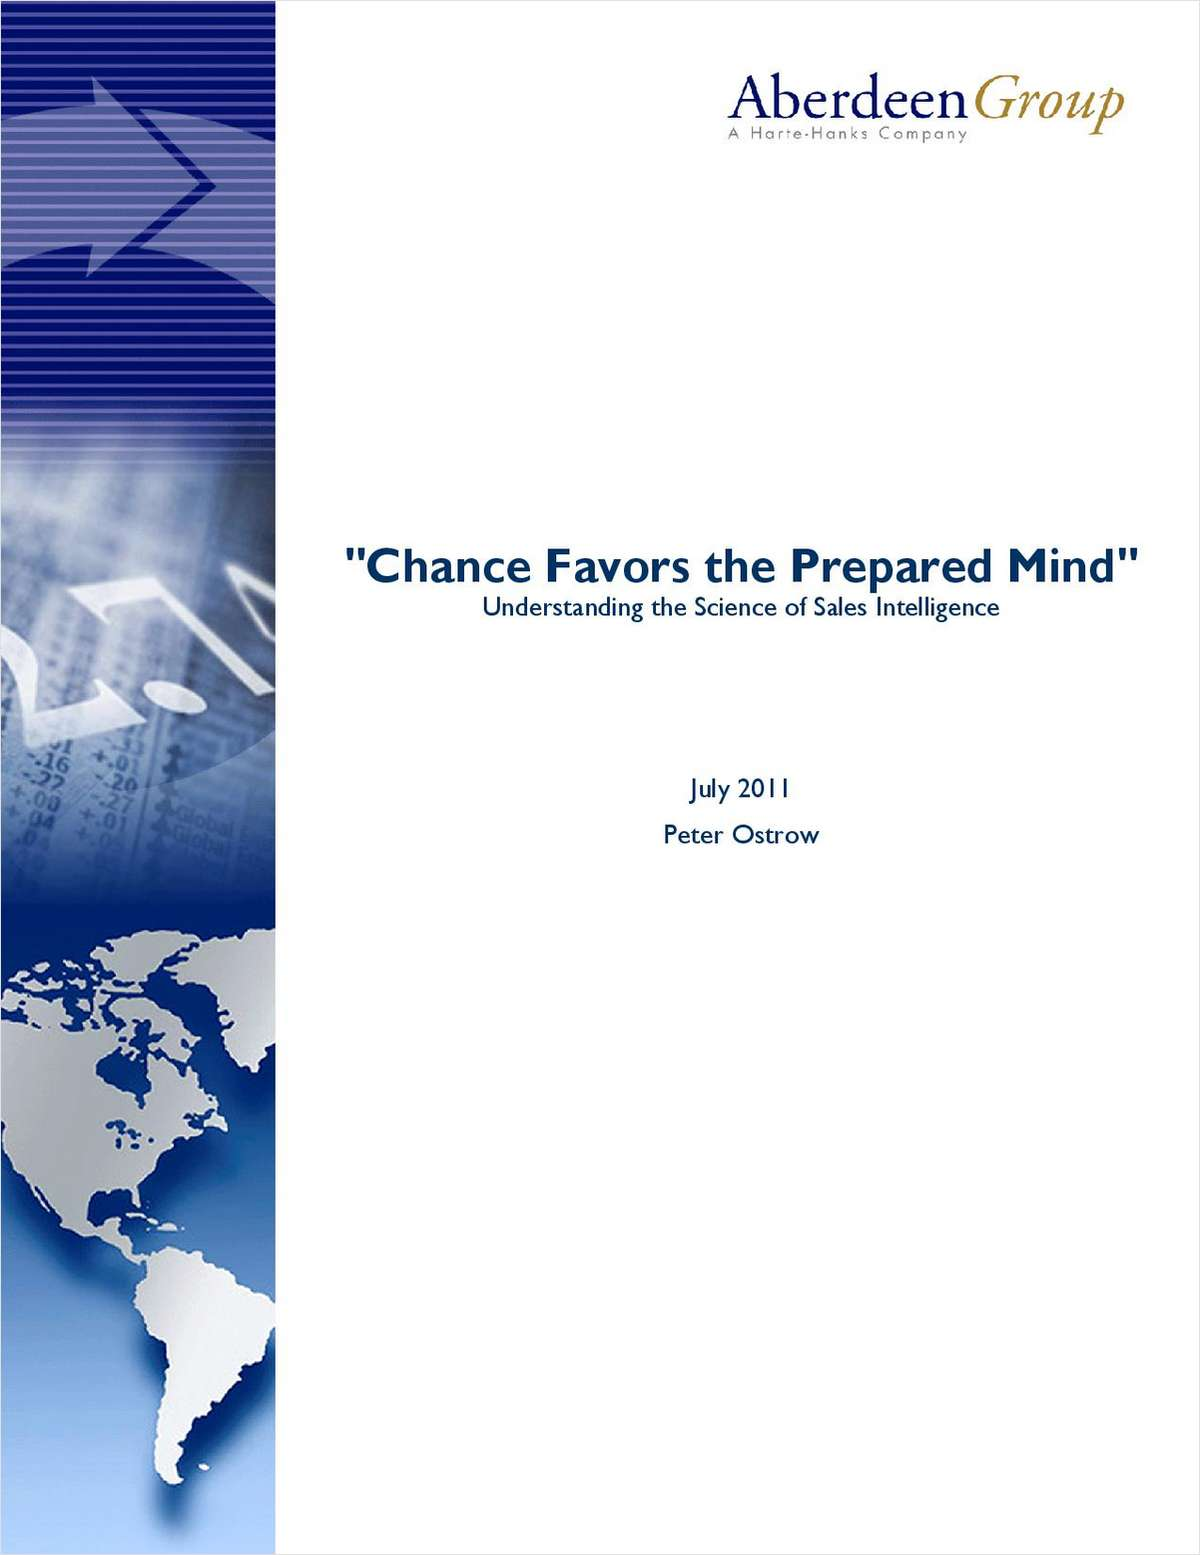 Chance Favors the Prepared Mind: Understanding the Science of Sales Intelligence